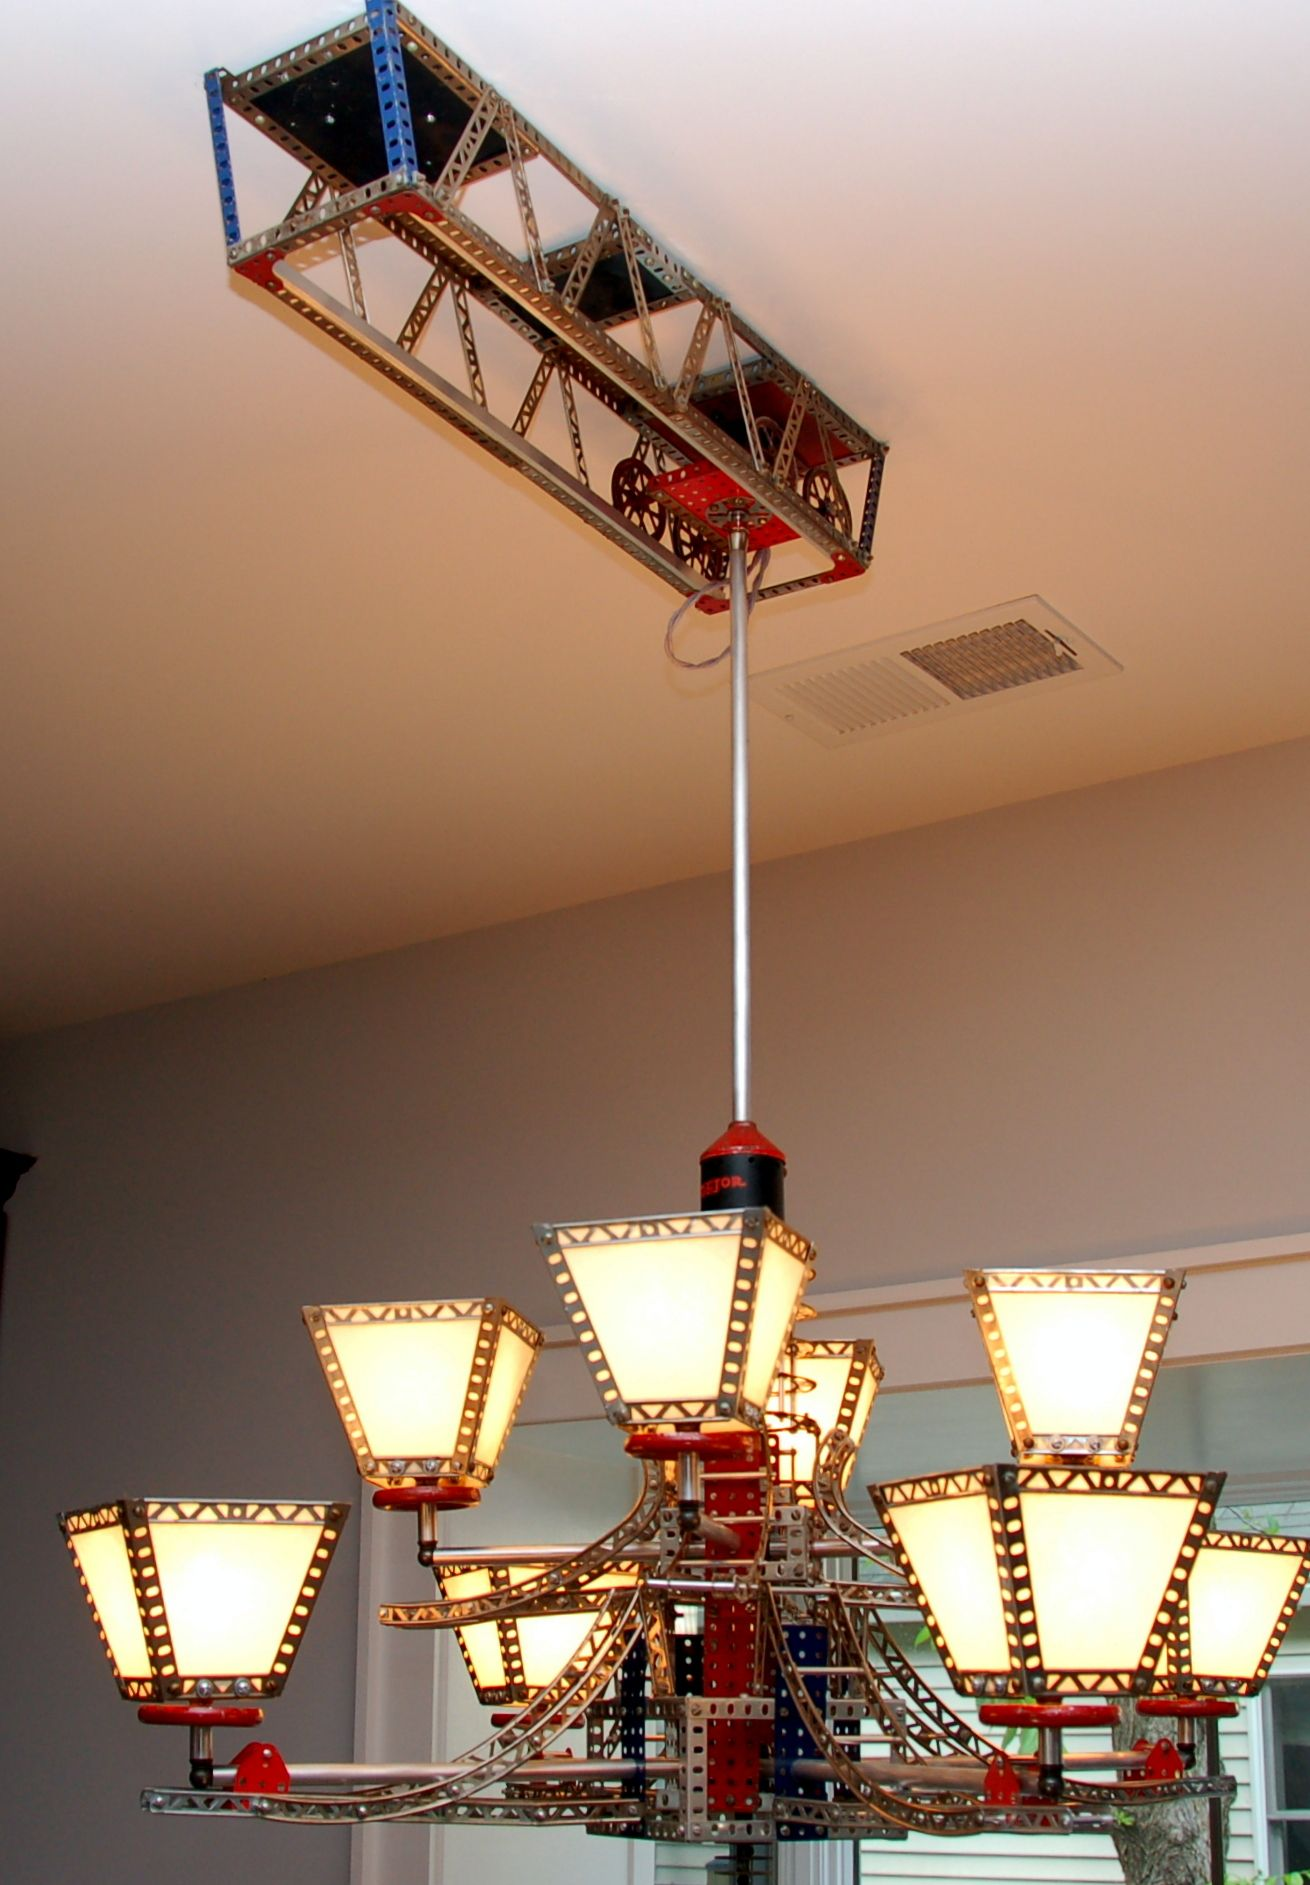 reputable site 6d738 e5487 Meccano Erector Set lighting on track system | Steampunk ...